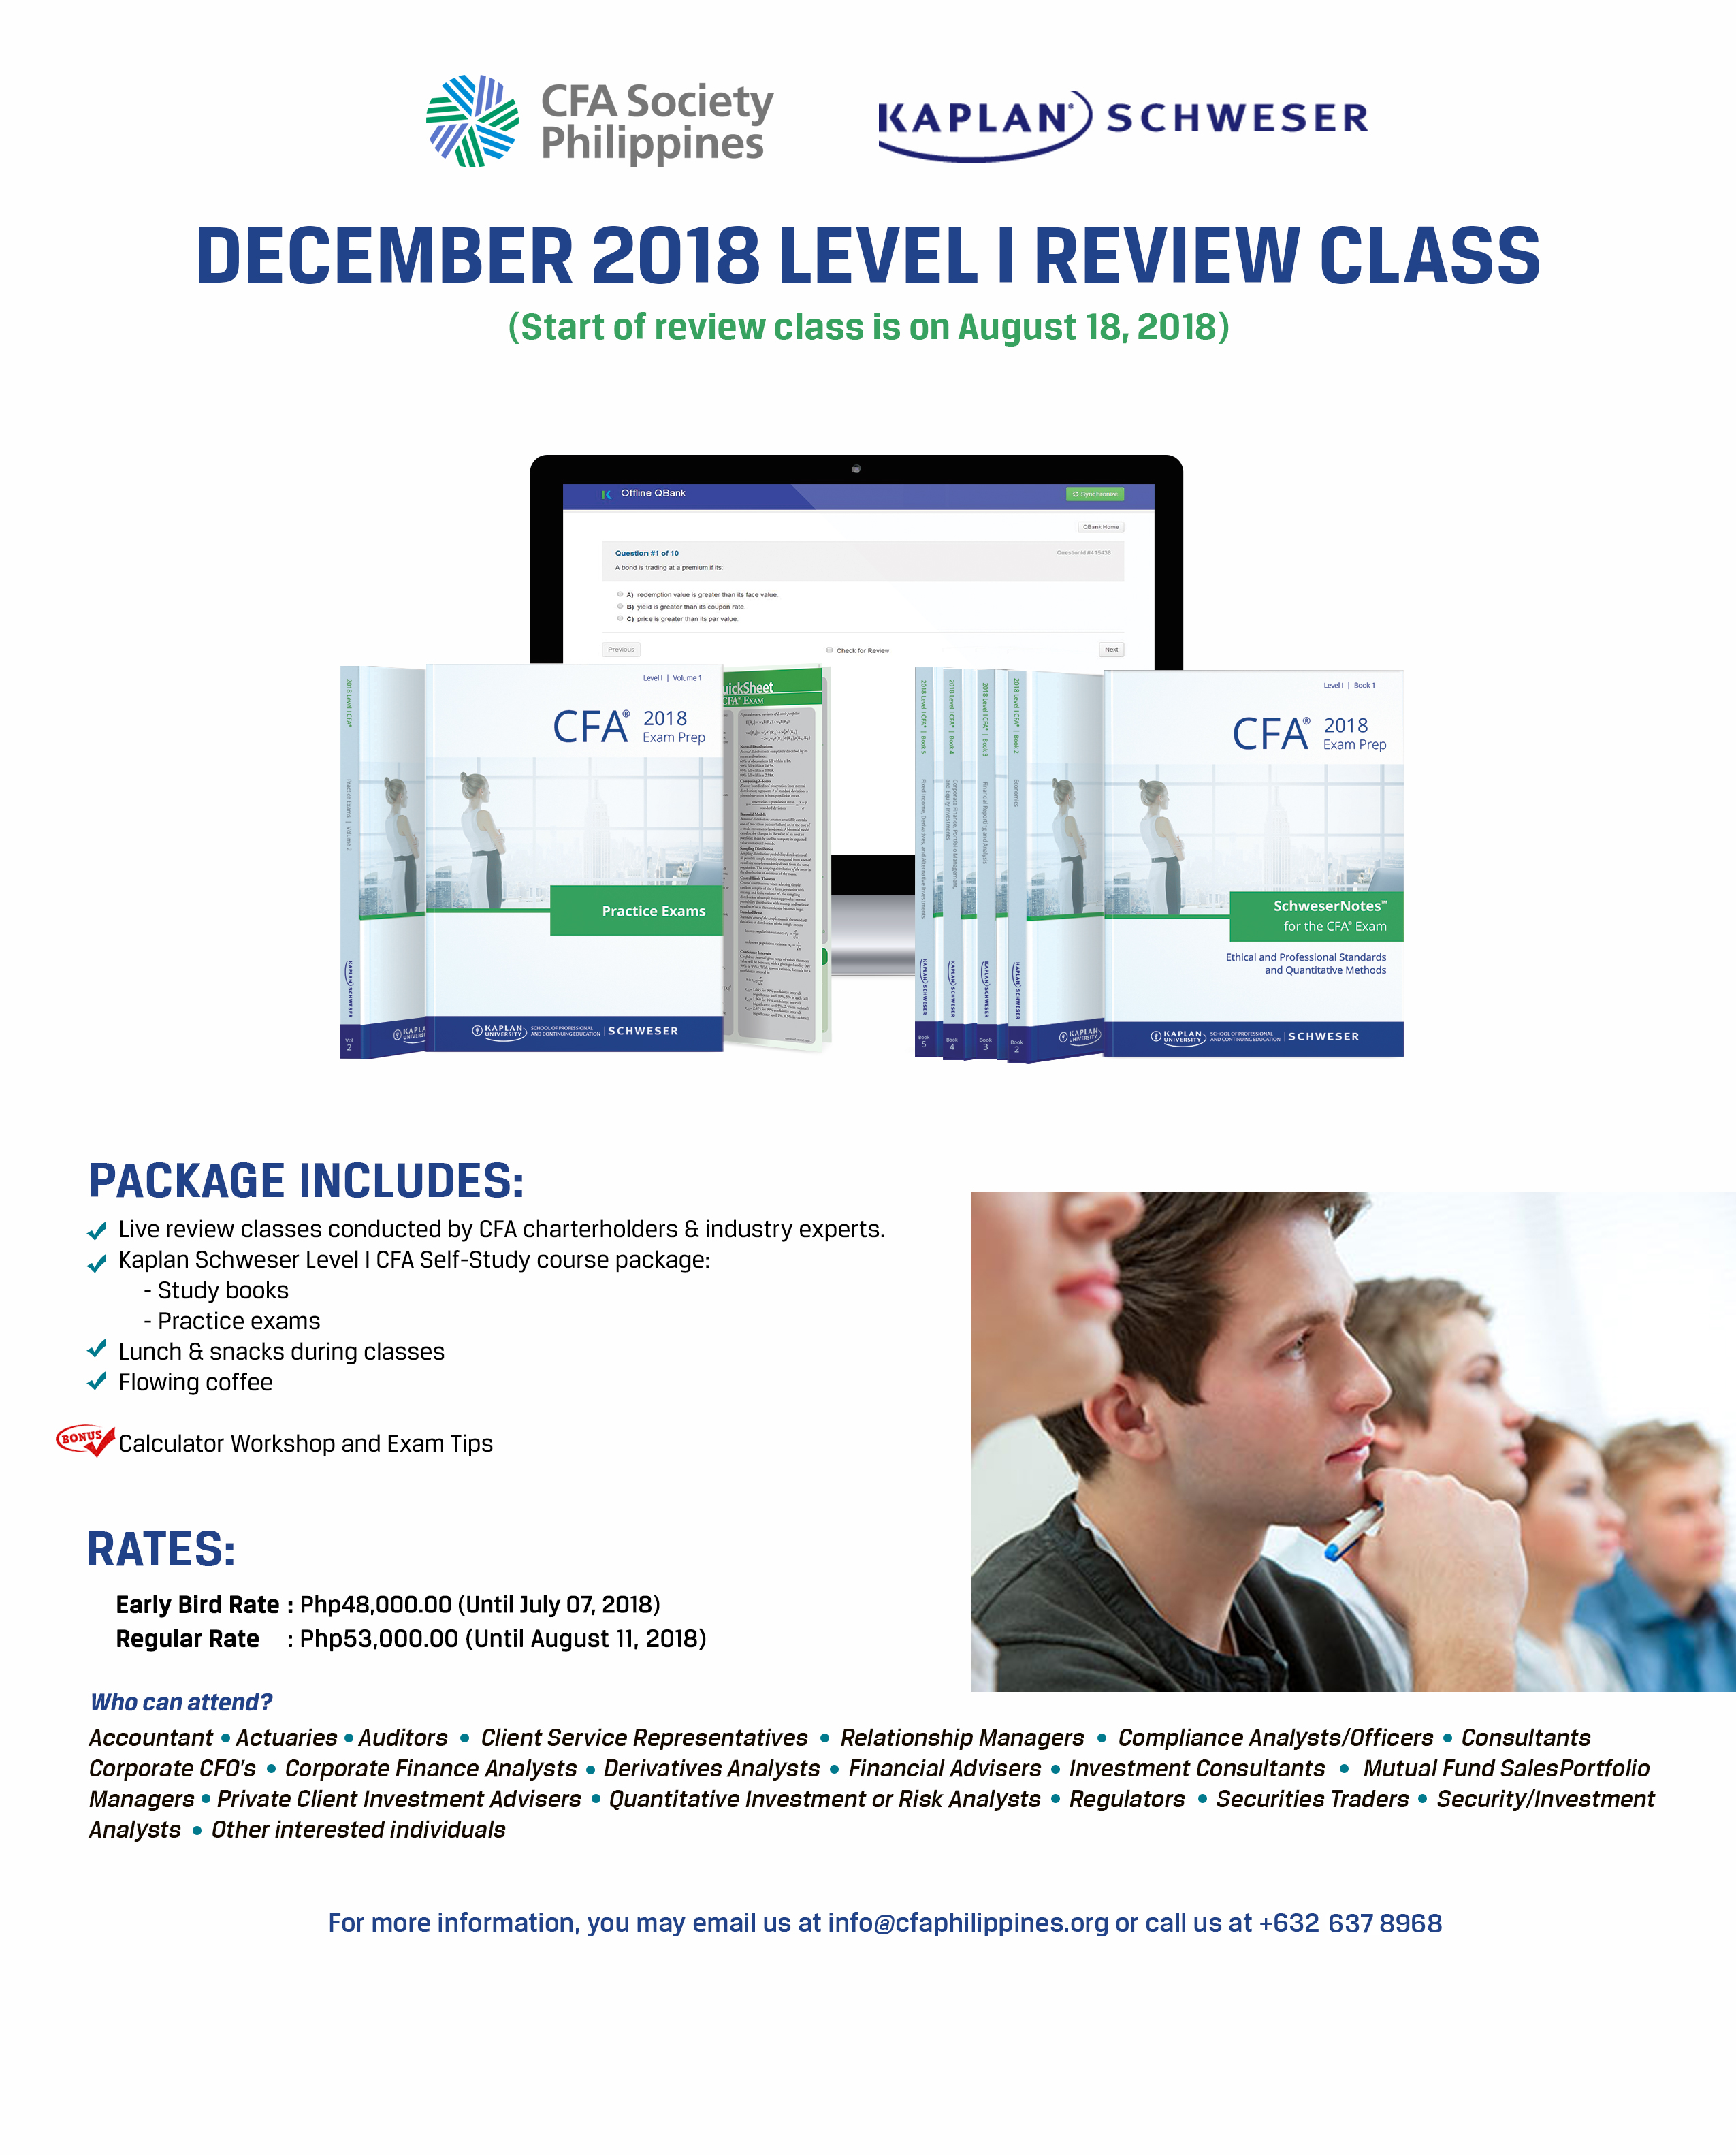 December Review Class Ad Kaplan 2018_2.jpg